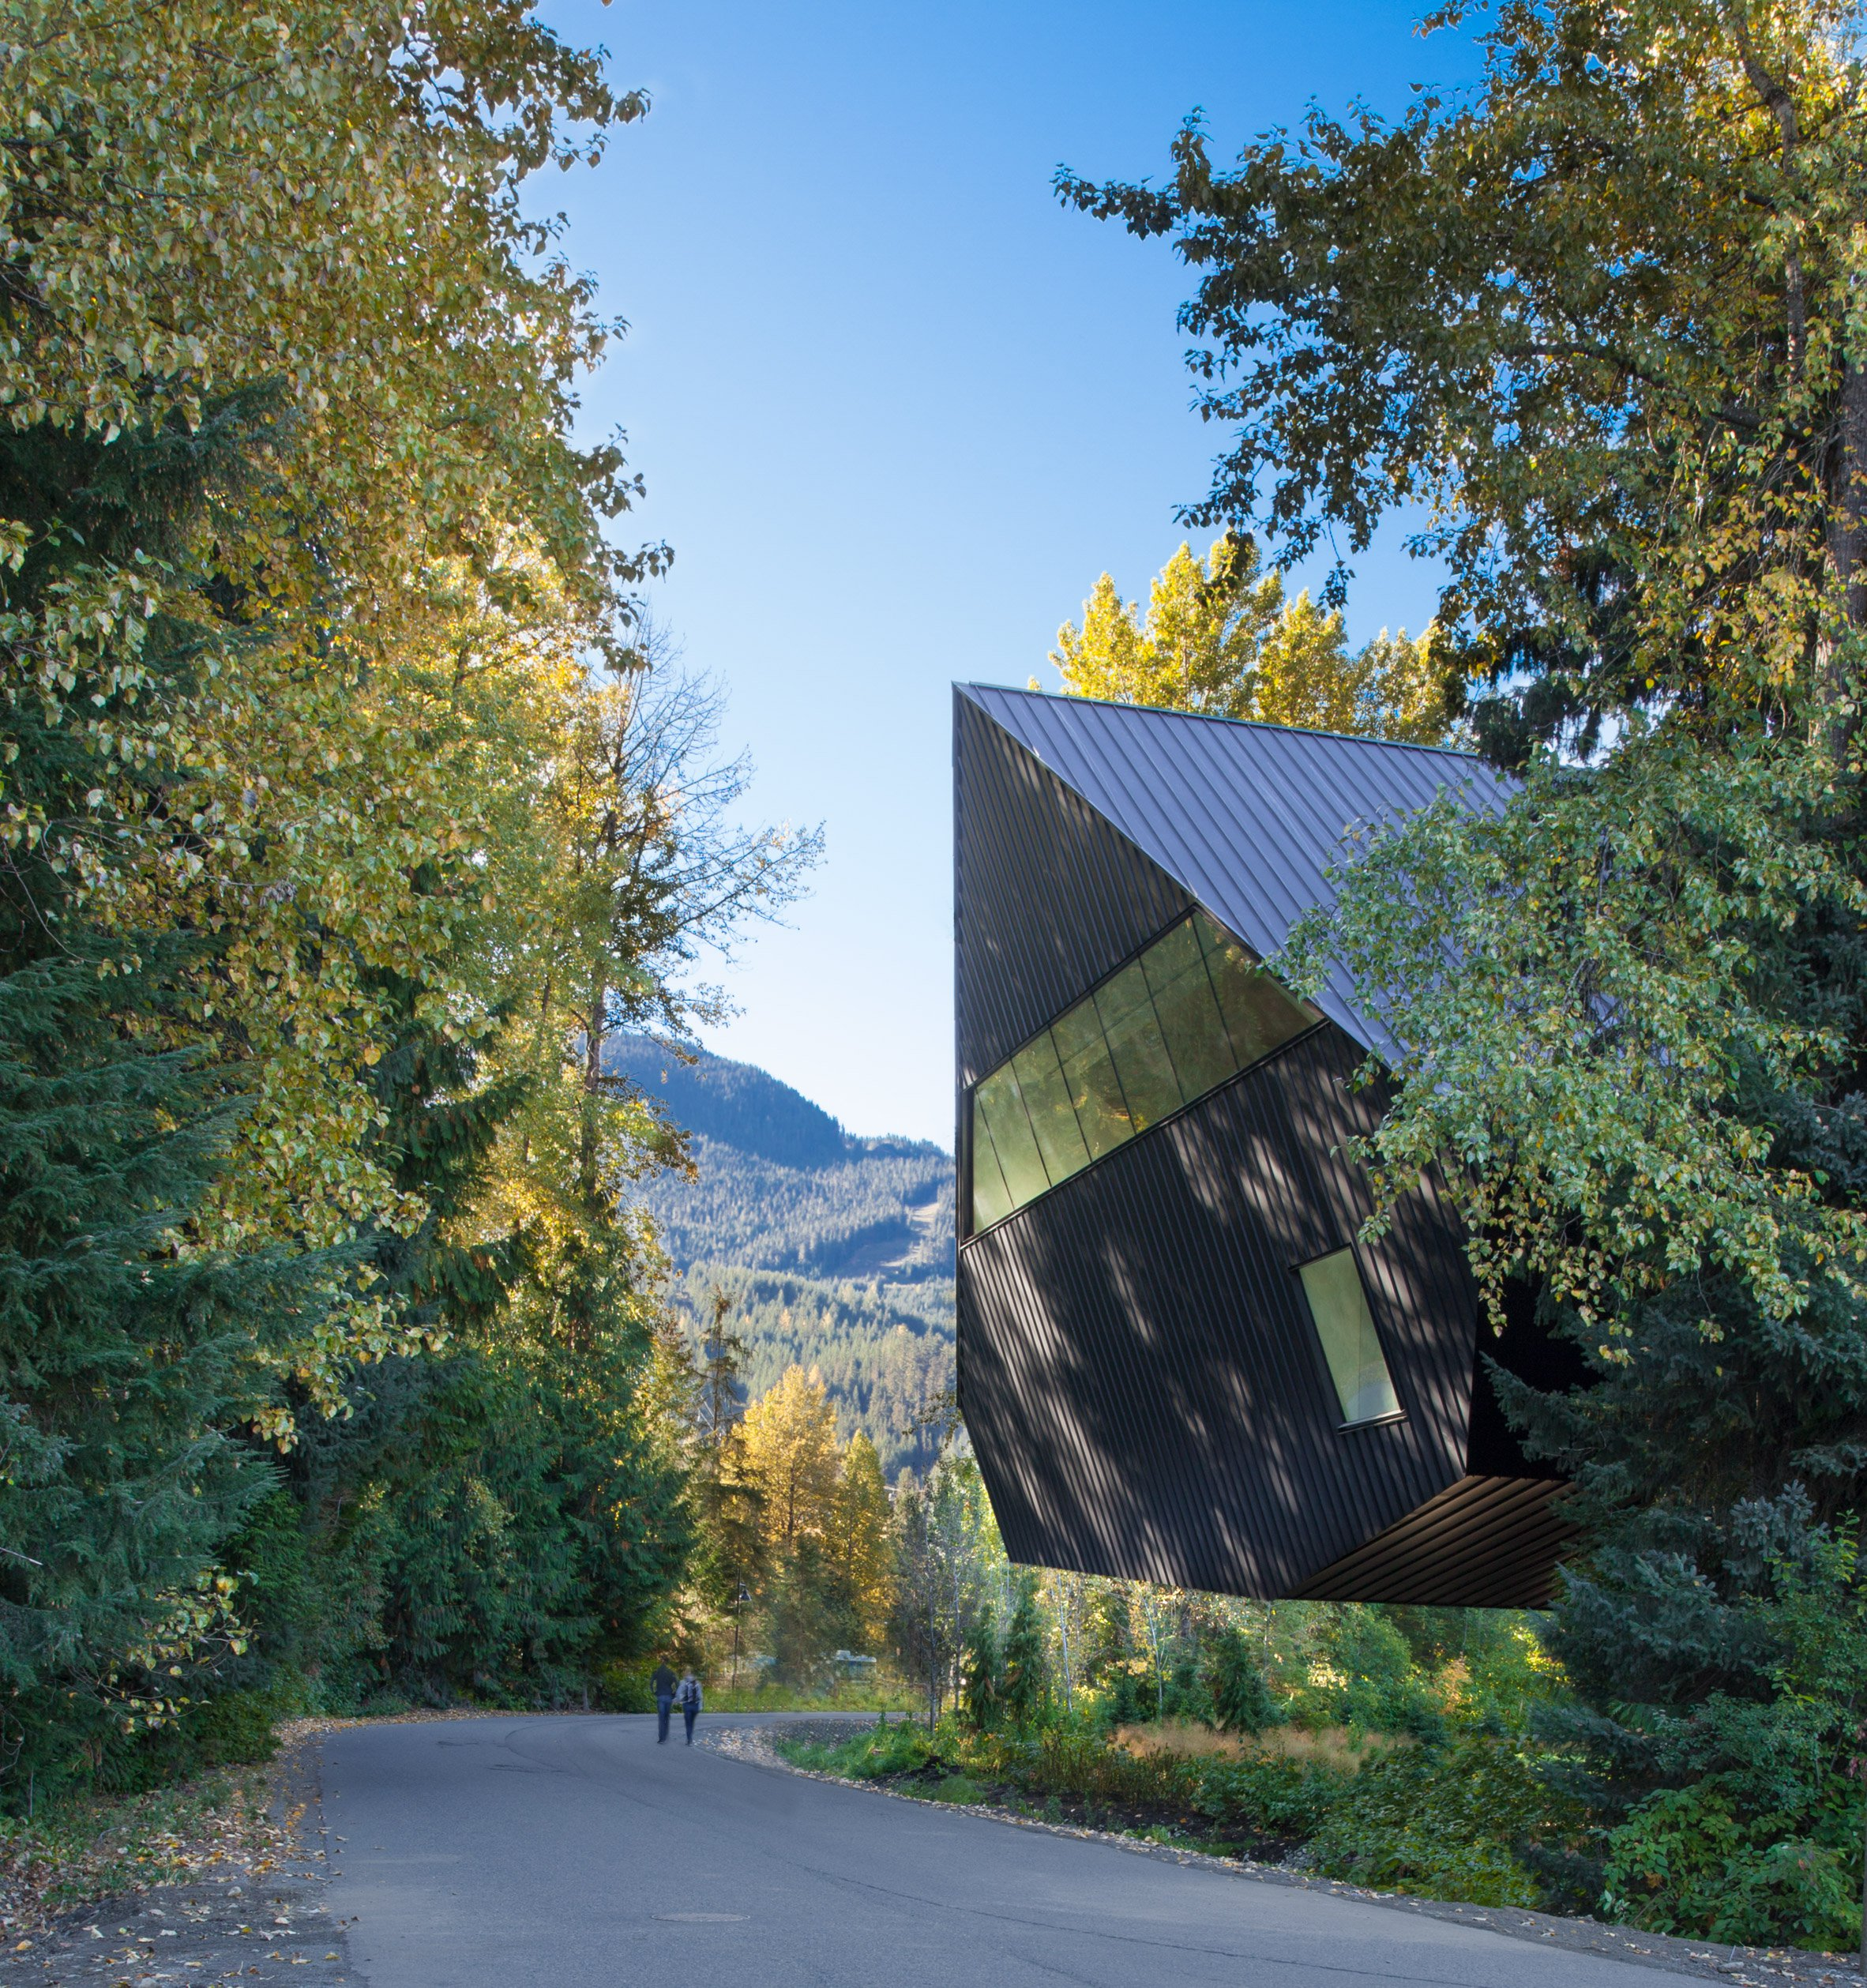 Pitched roofs and wooden slats characterise Audain Art Museum by Patkau Architects